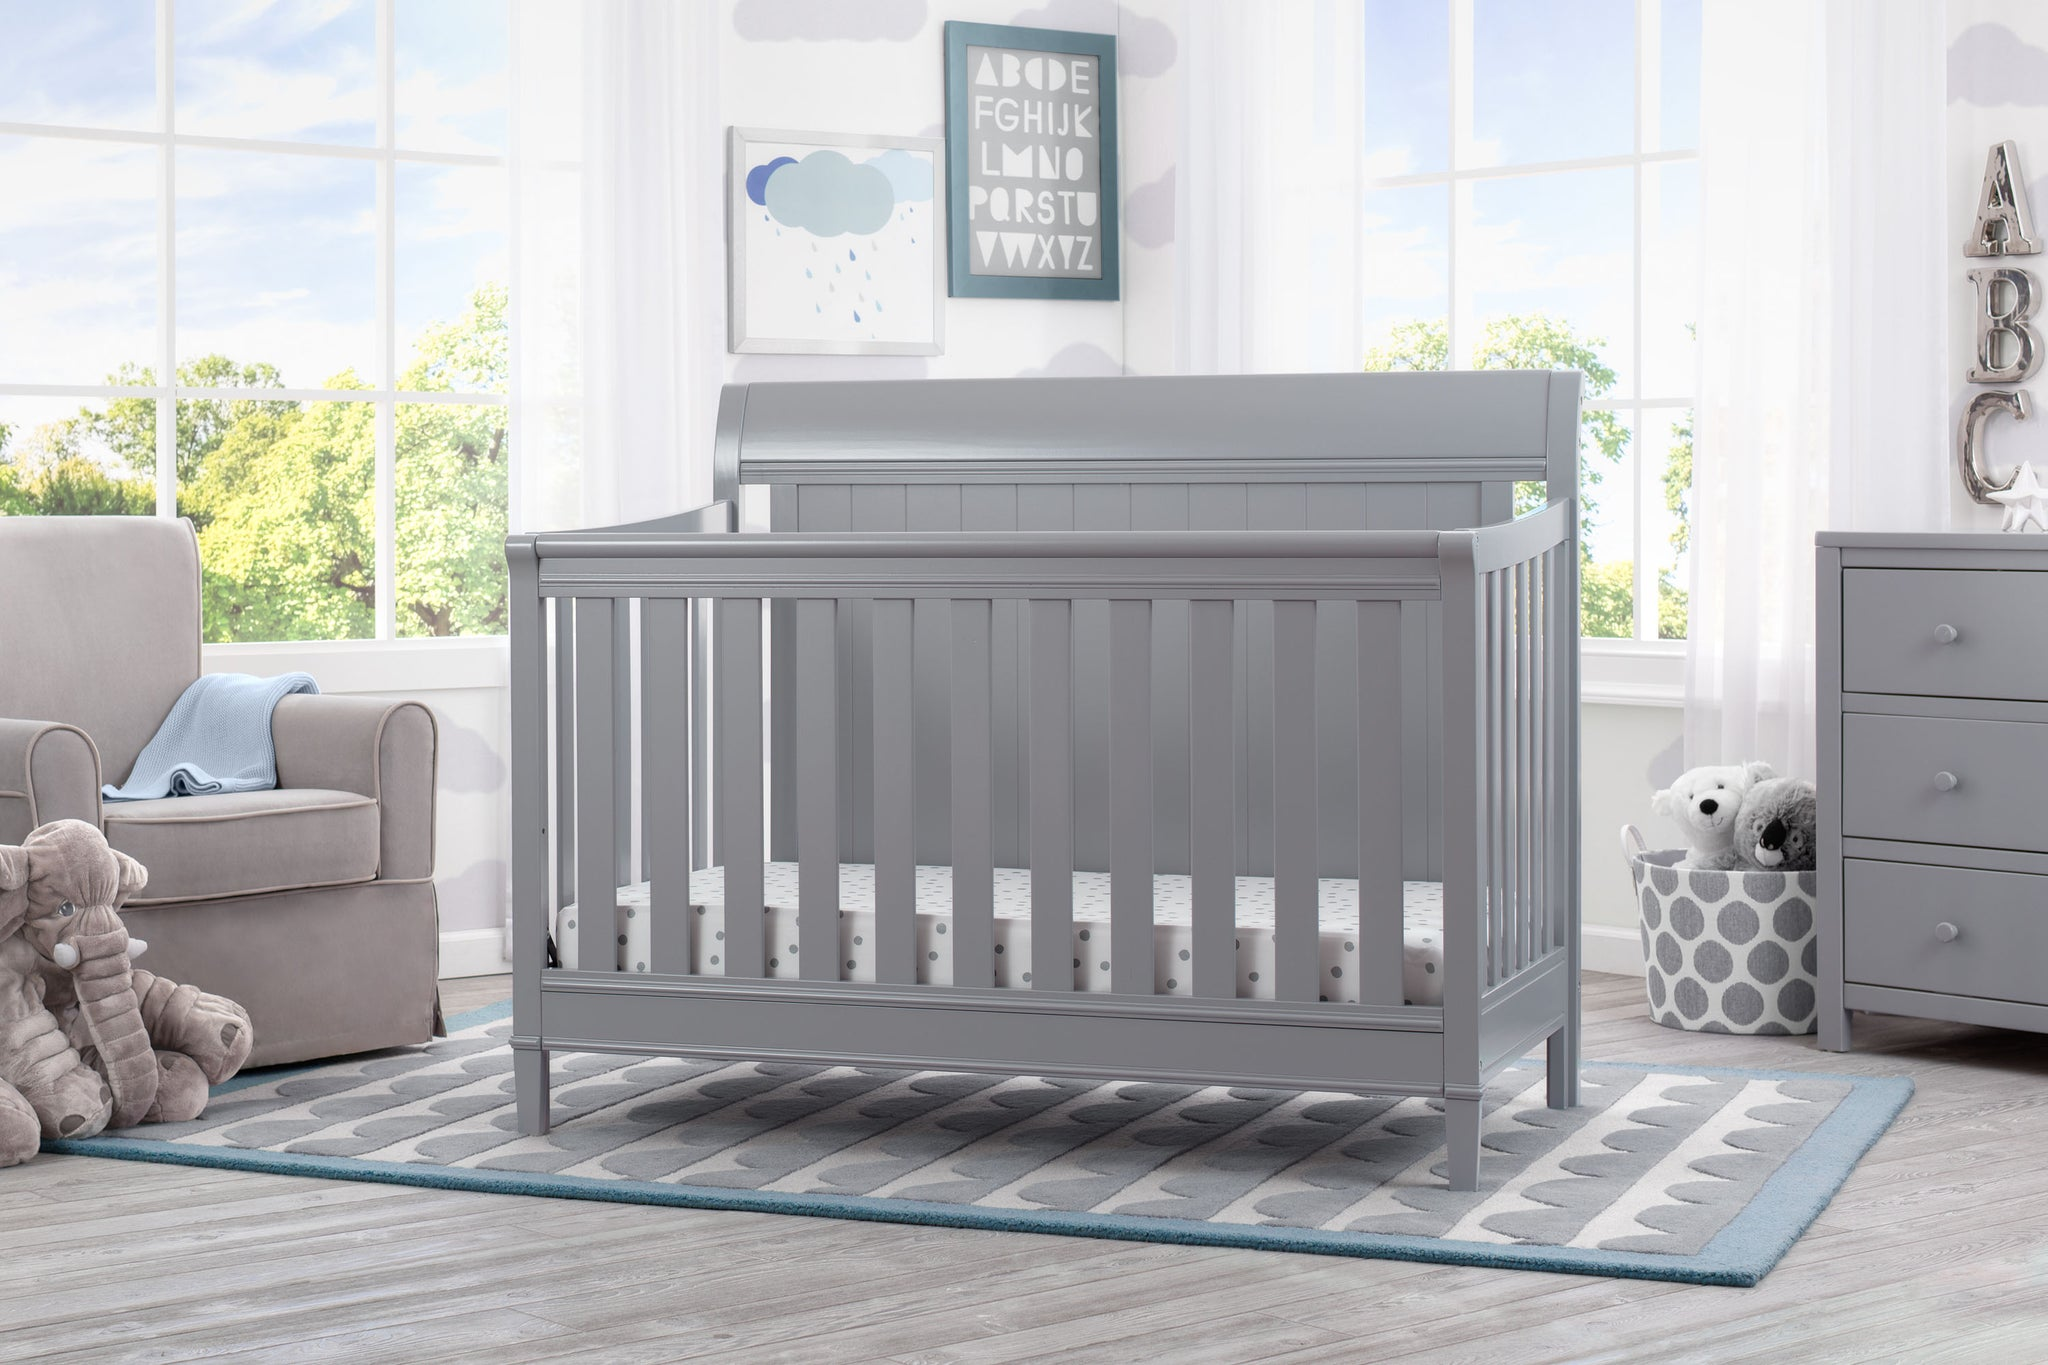 Delta Children Grey (026) New Haven 4-in-1 Crib, Hangtag, b1b